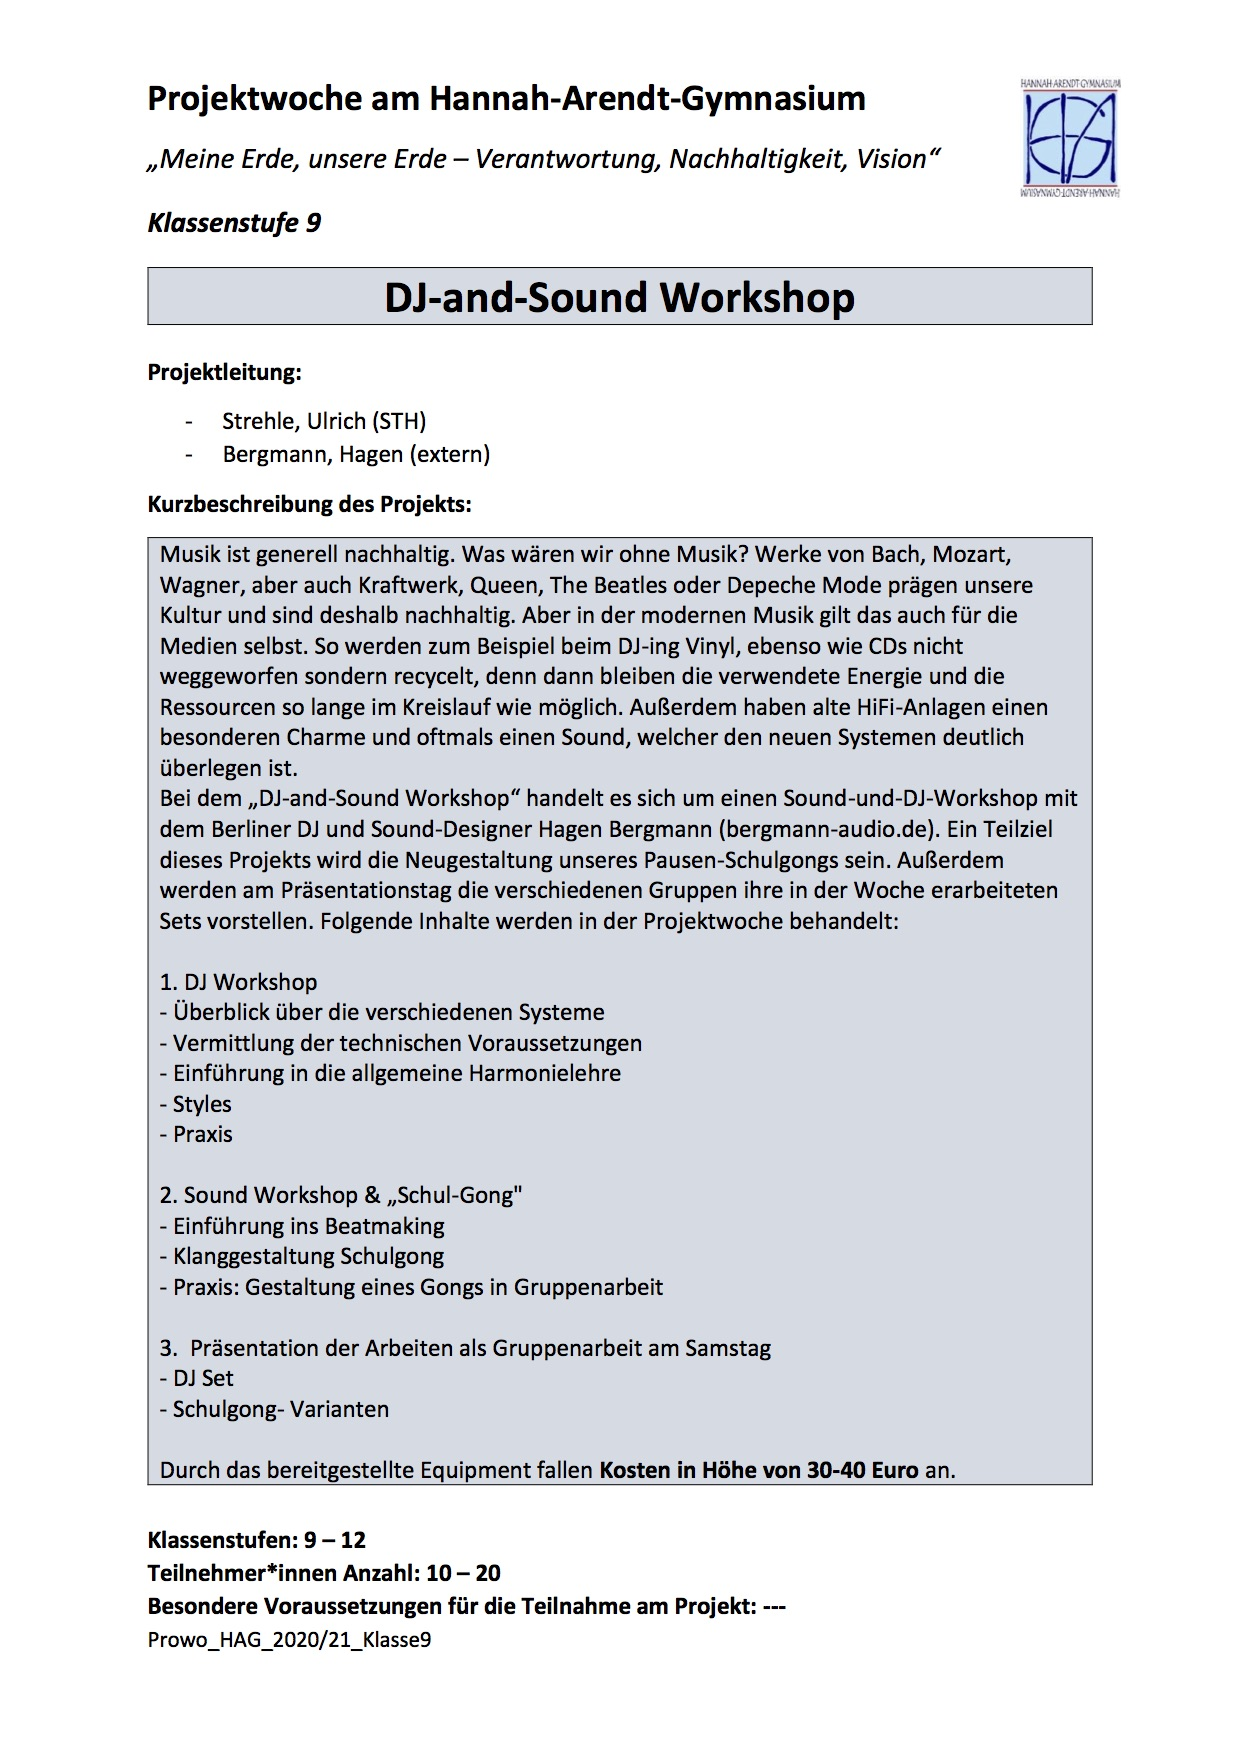 DJ-and-Sound Workshop